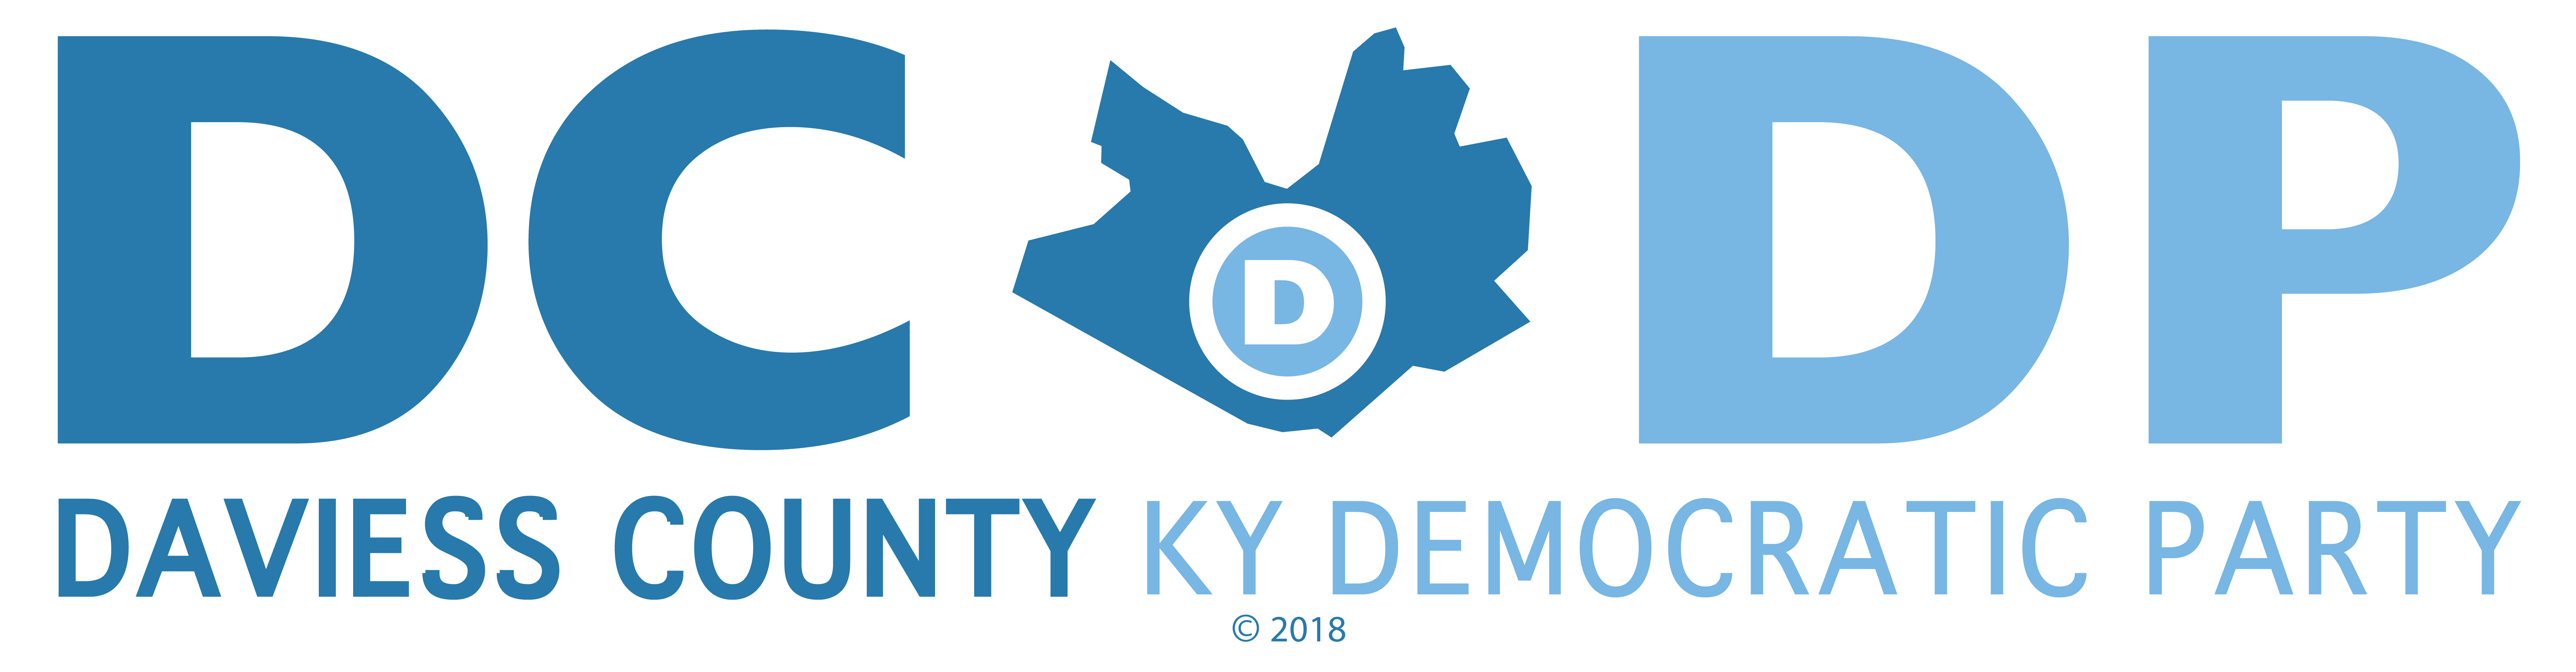 Daviess County KY Democratic Party